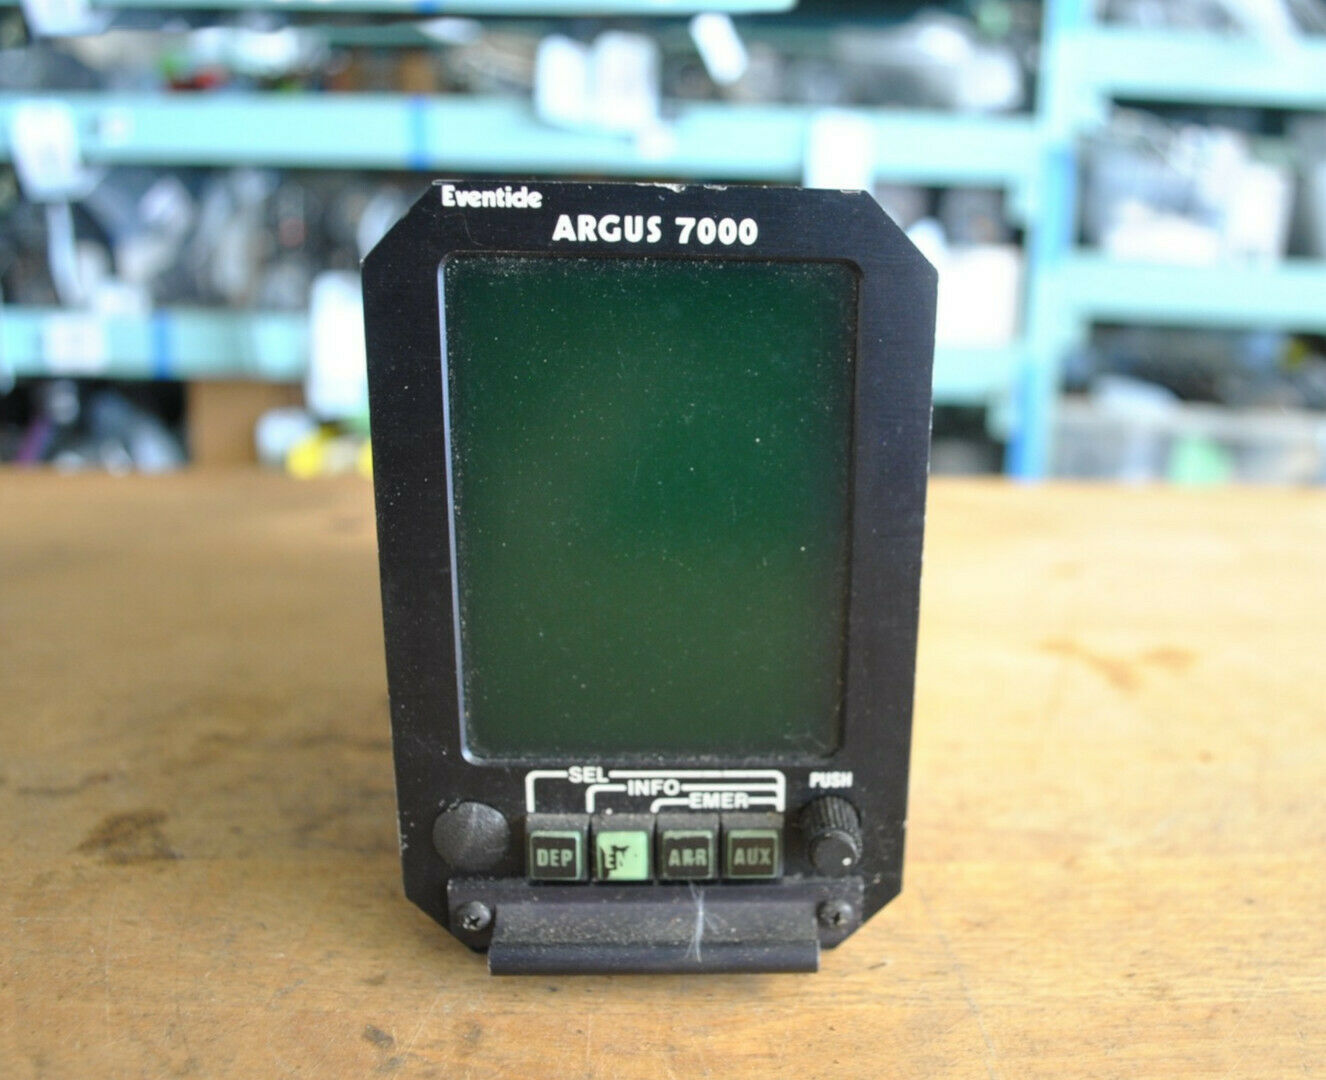 Argus Eventide 7000 Moving Map GPS Indicator 7000-10-07